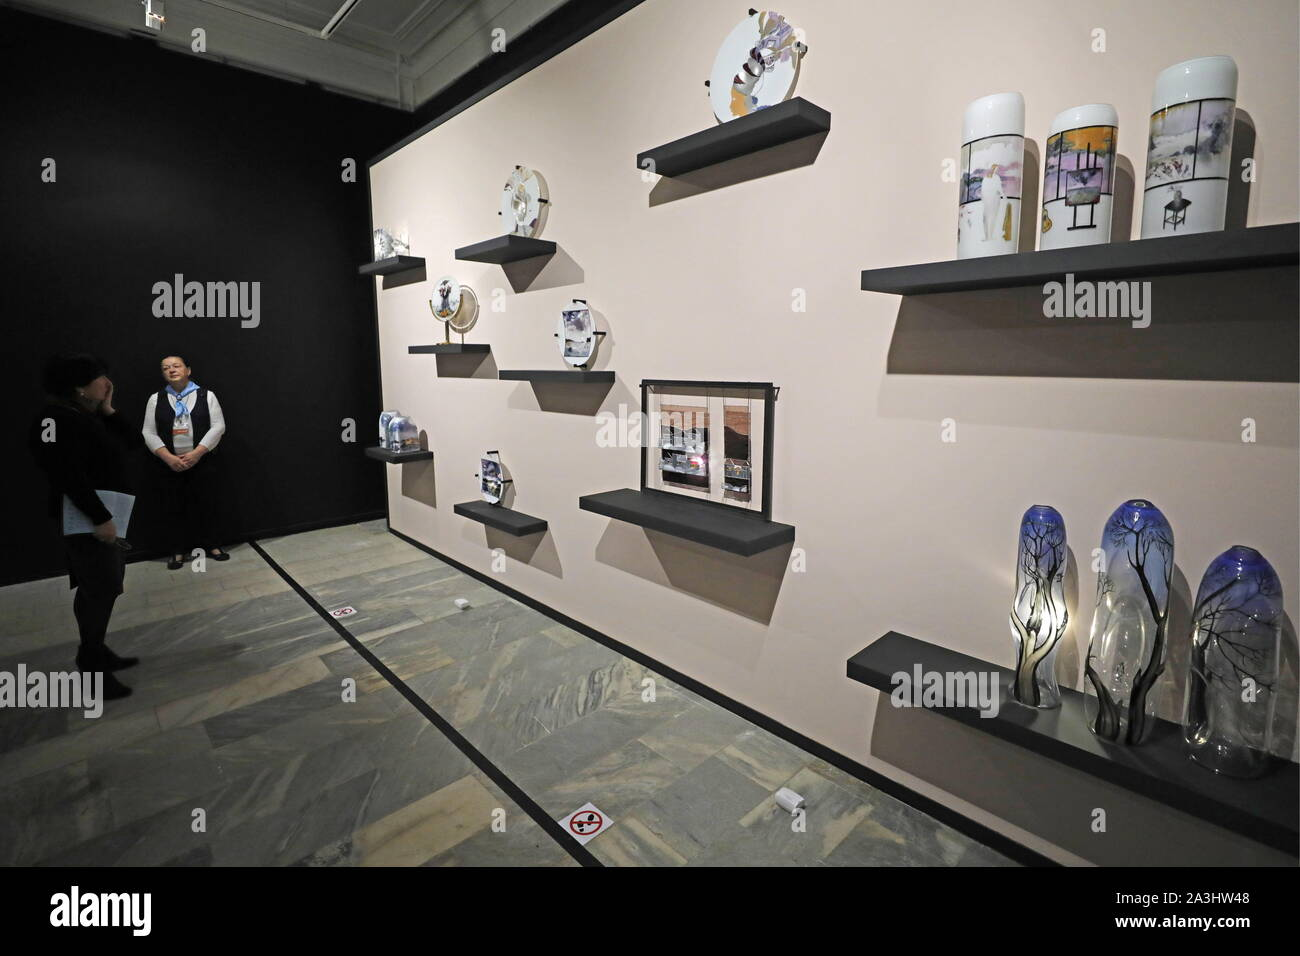 Moscow Russia October 8 2019 The Na Prosvet Exhibition Of Soviet And Post Soviet Glass Art At The All Russia Museum Of Decorative Applied And Folk Art Mikhail Japaridze Tass Stock Photo Alamy